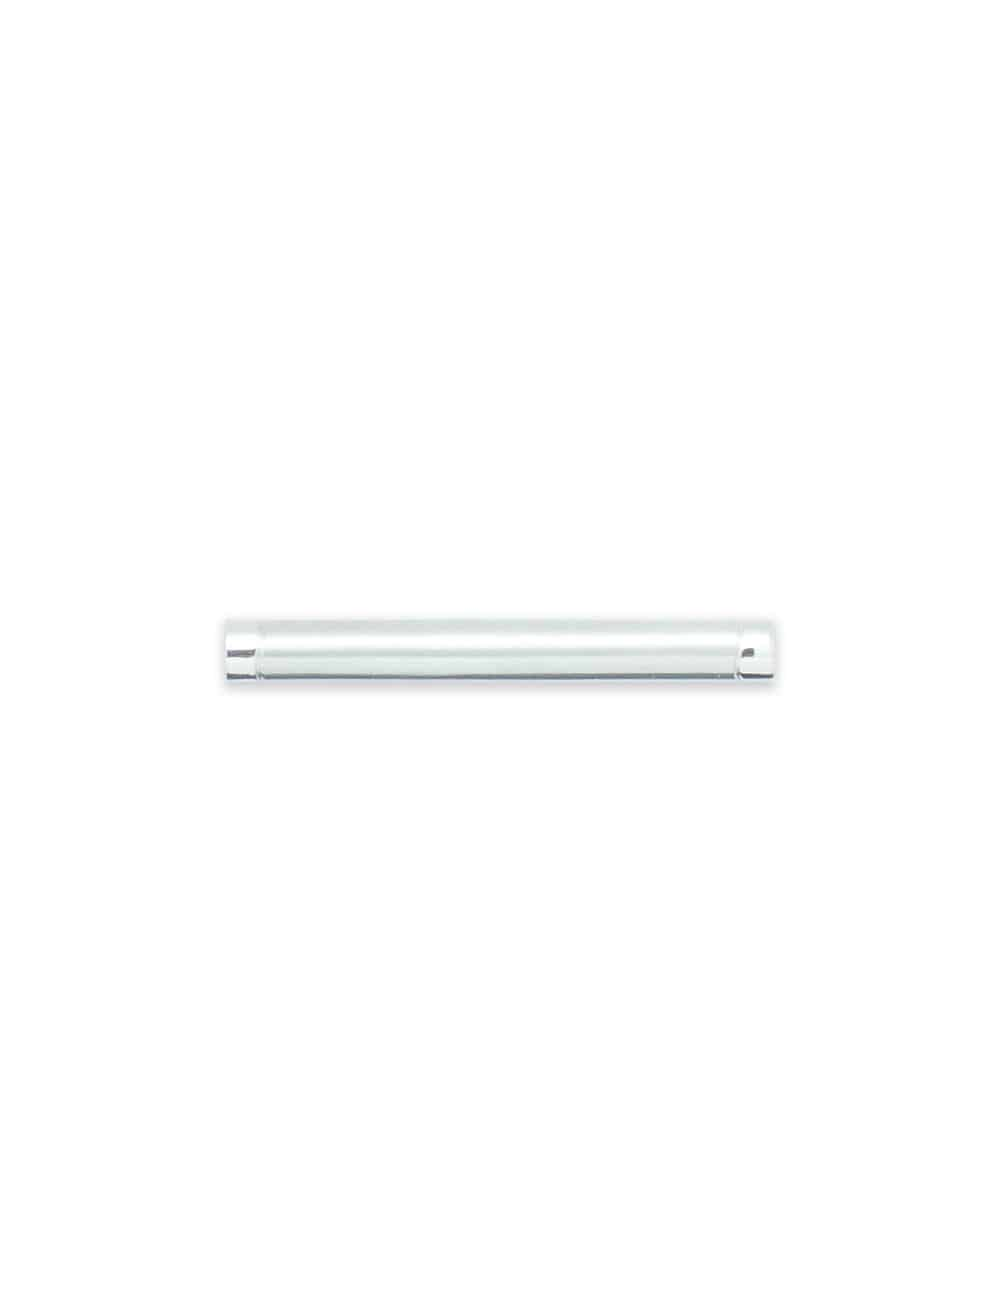 Classic Brushed Silver Centre Tie Clip T101FC-026